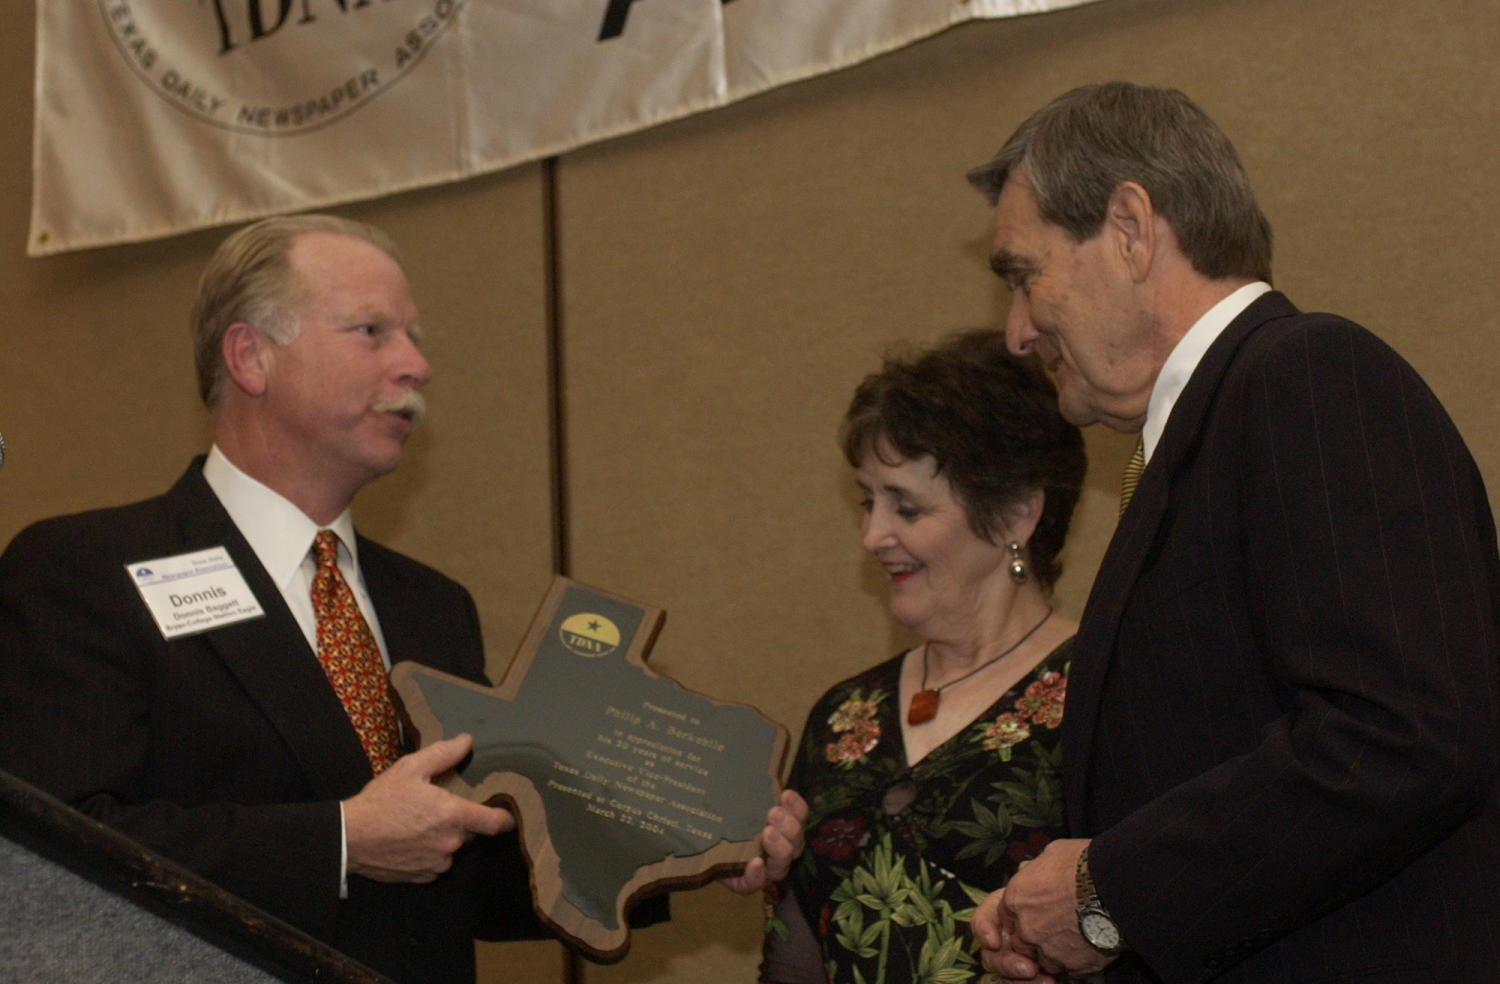 [Donnis Baggett presenting an award to Phillip A. Berkebile], Photograph of Donnis Baggett (left) presenting an award to Phillip A. Berkebile and a woman presumed to be his wife, during the 2004 Texas Daily News Association annual conference held in Corpus Christi.,